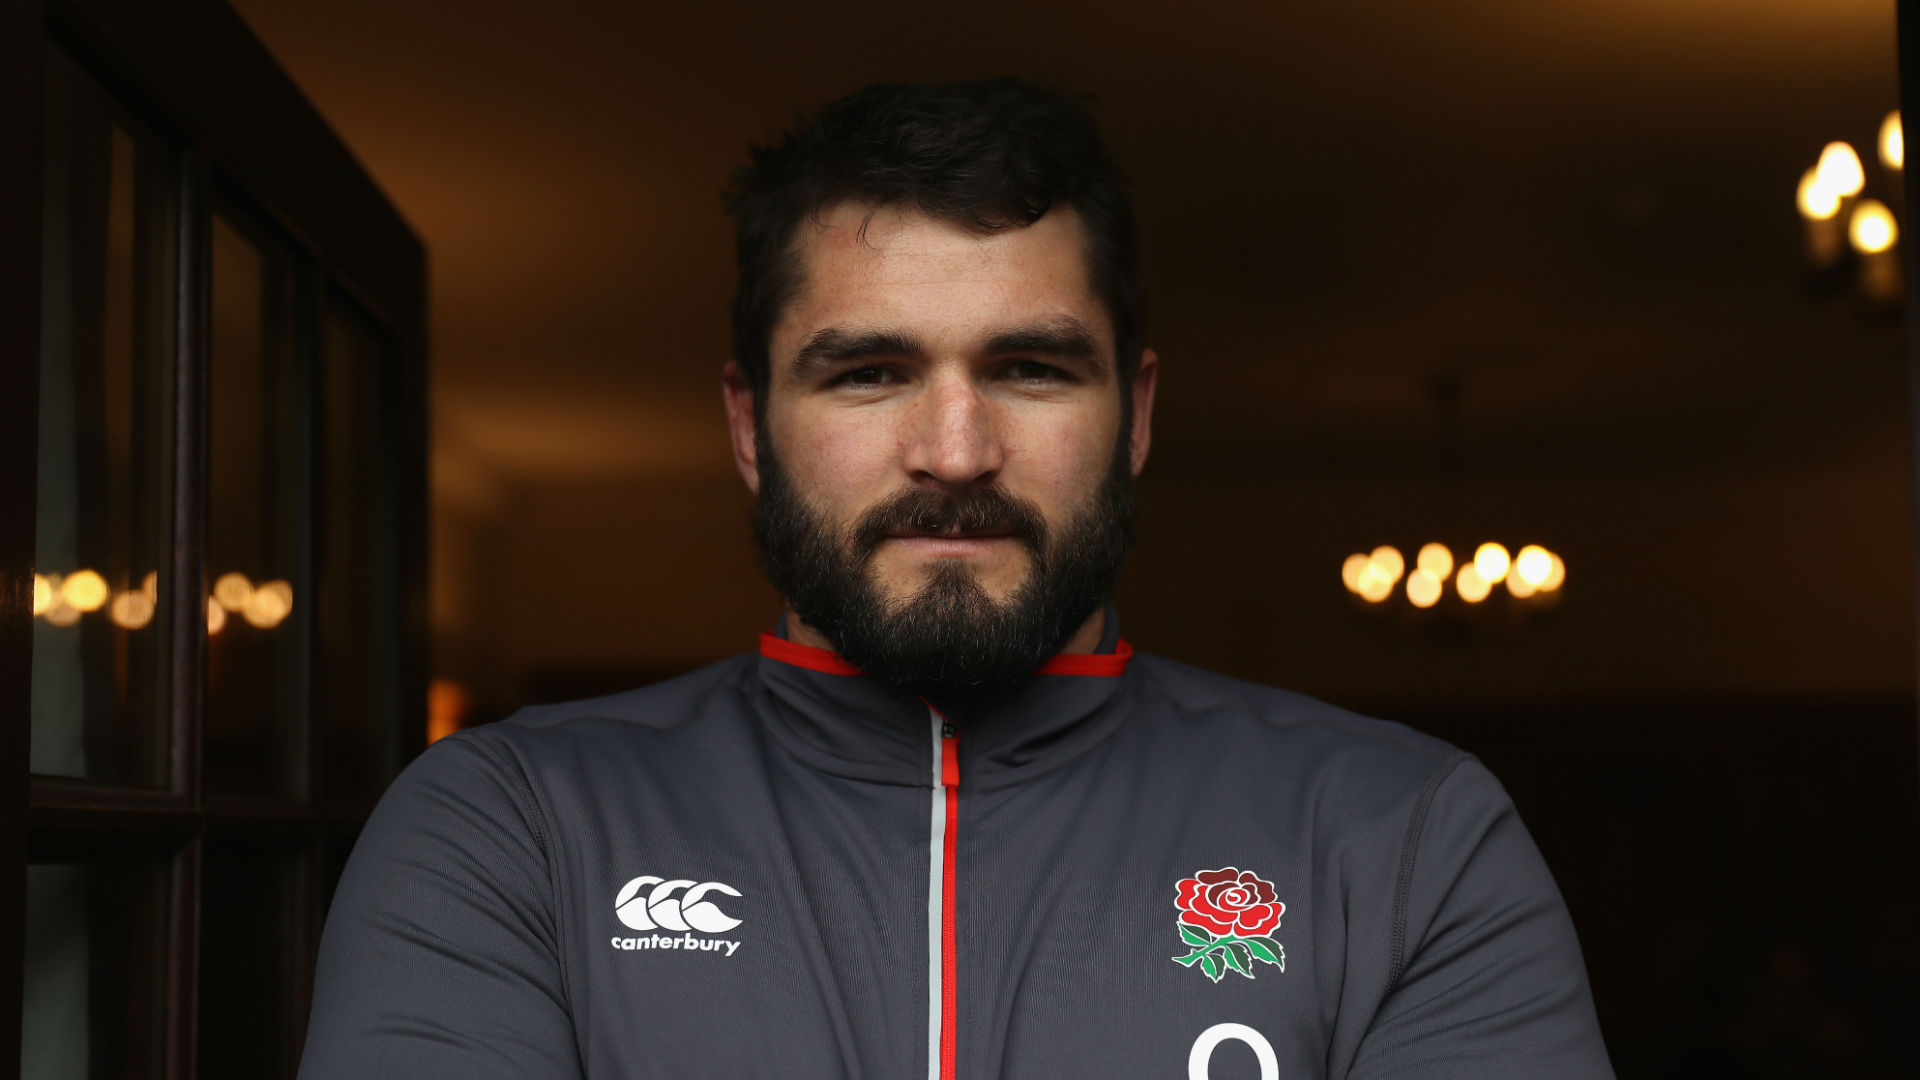 Eddie Jones looks to draw a line under offensive remarks